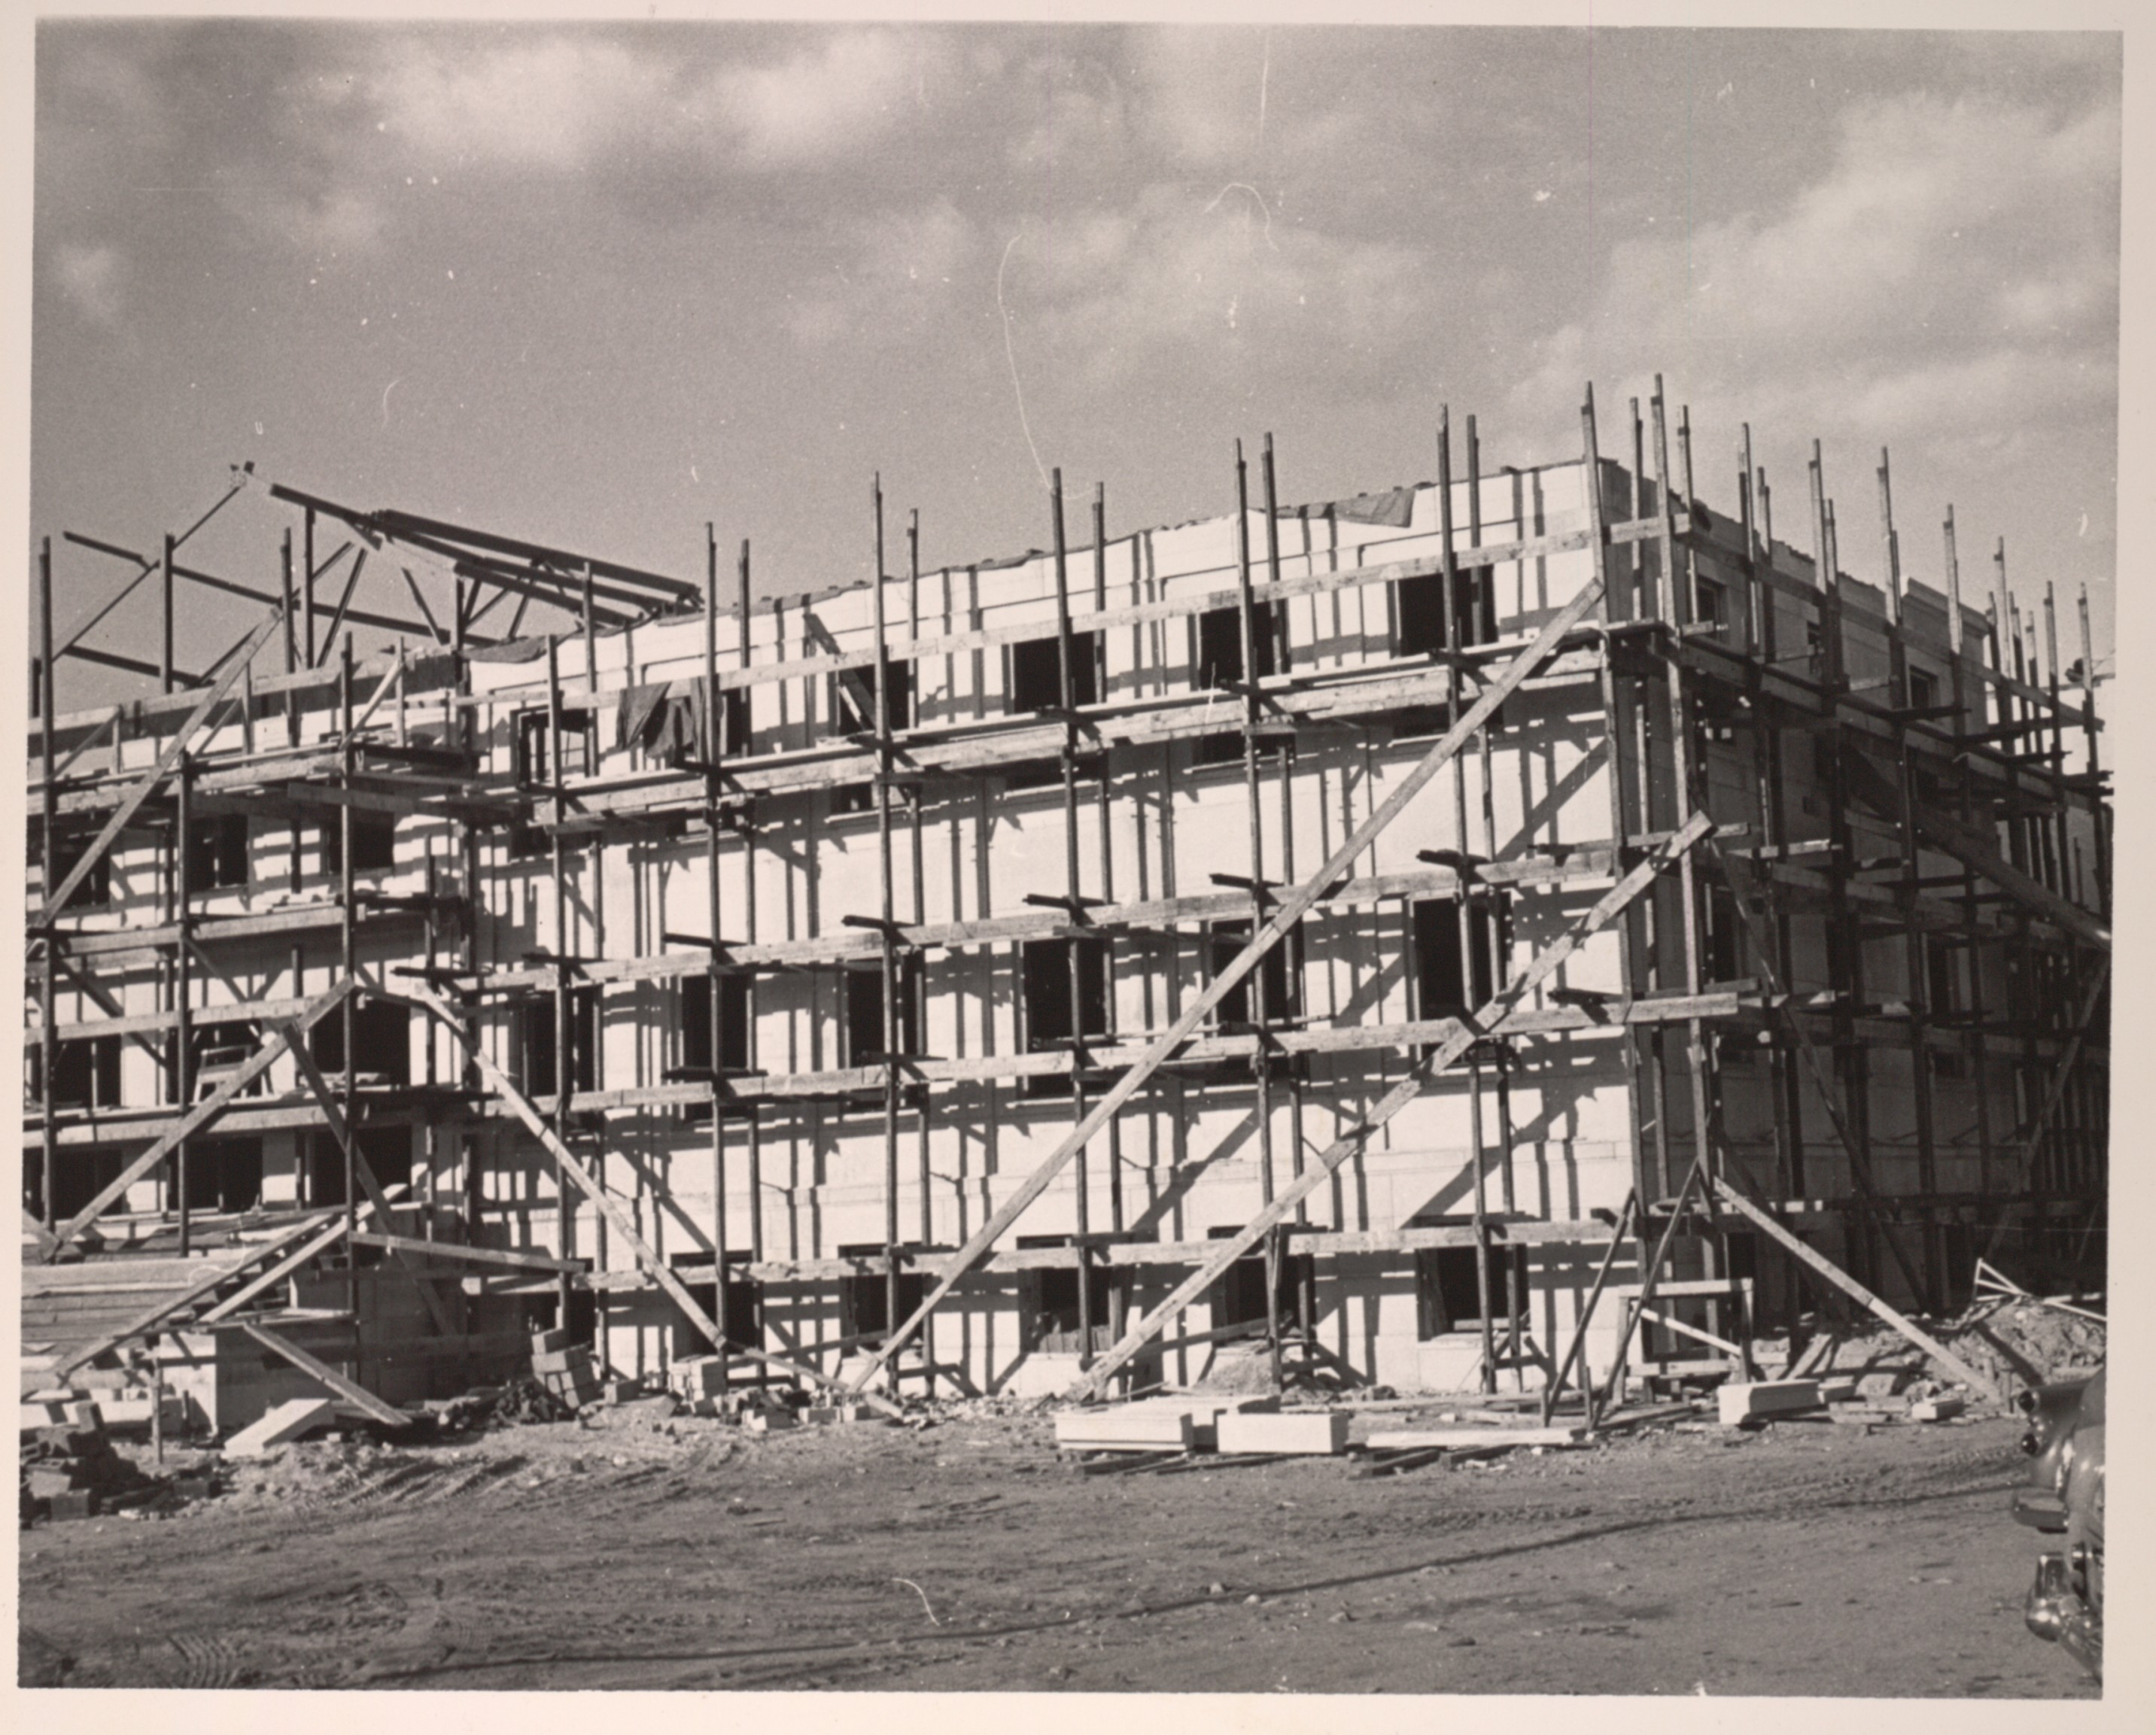 Lowell Textile Institute, Lowell, MA. Construction of Cumniock Hall.